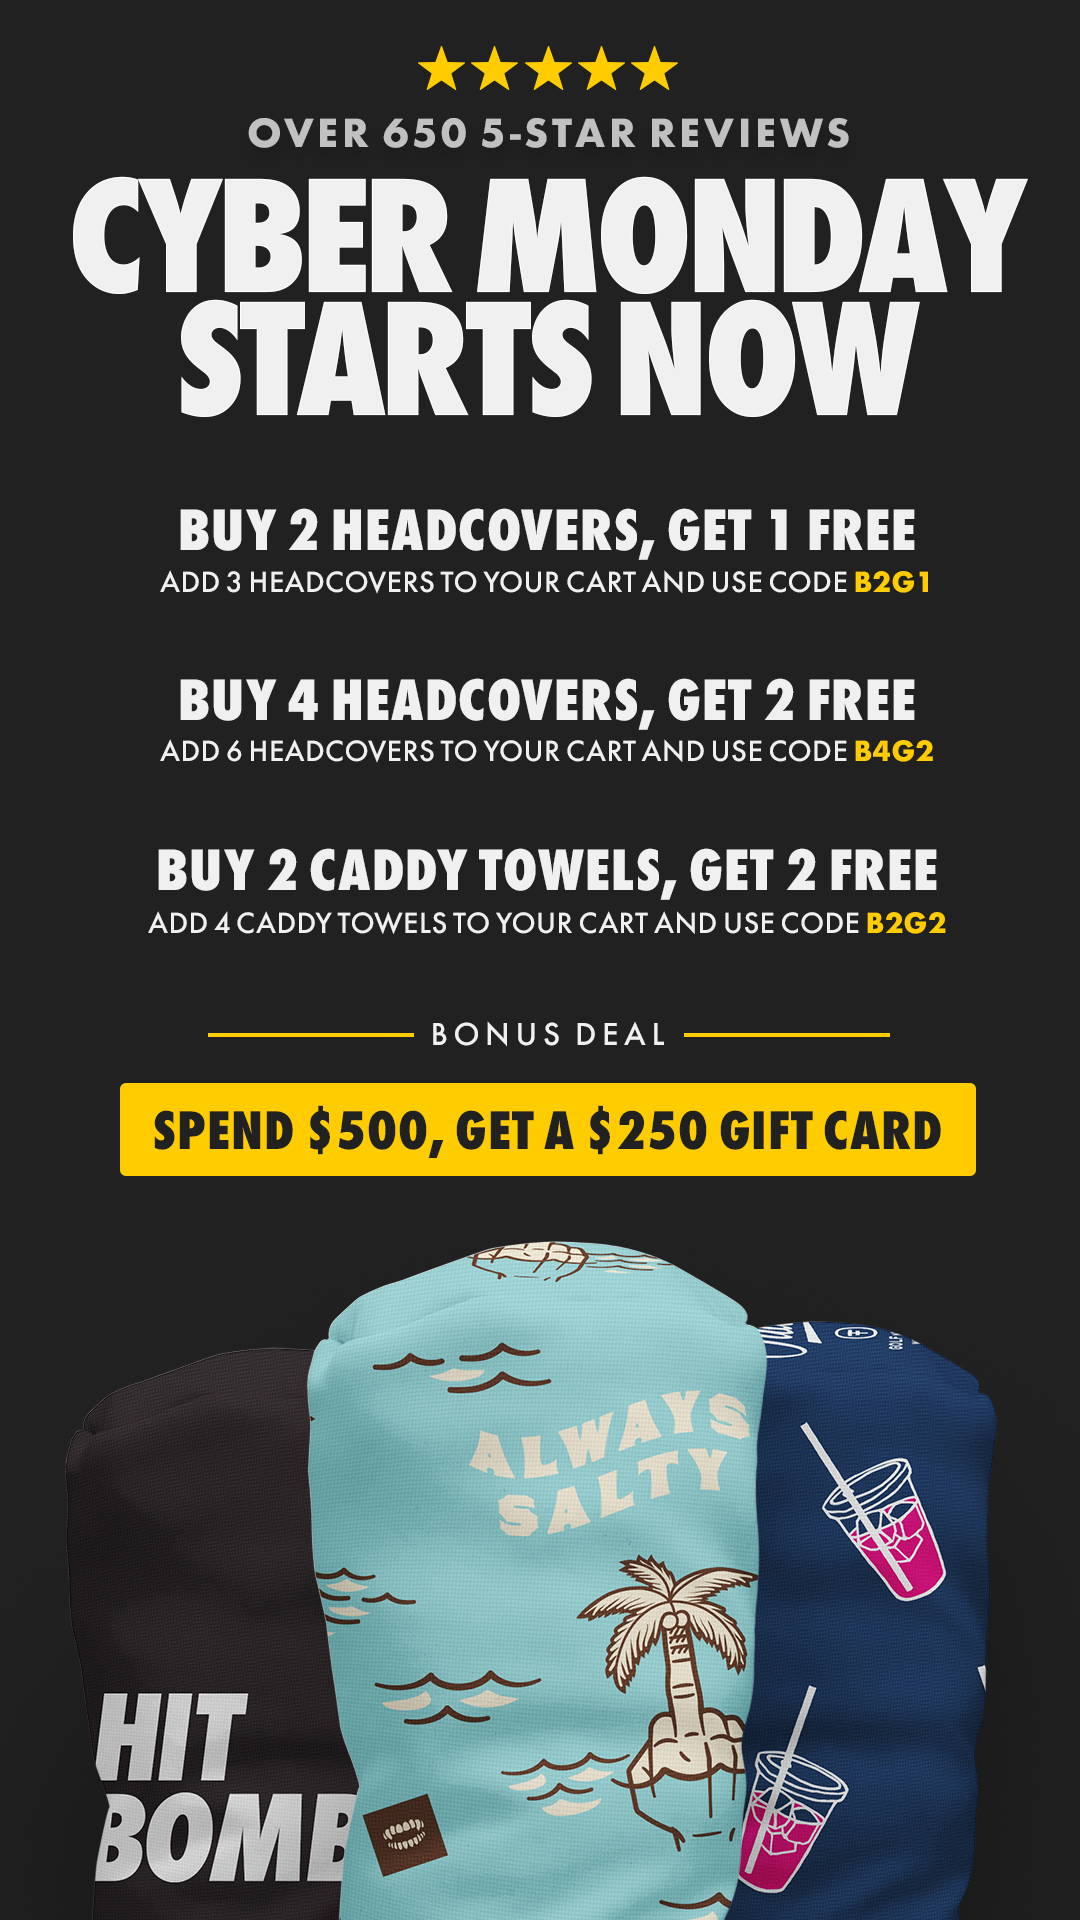 Cyber Monday Starts Now - Buy 2, Get 1 + Buy 4, Get 2 + Free $250 Gift Card when you spend $500!